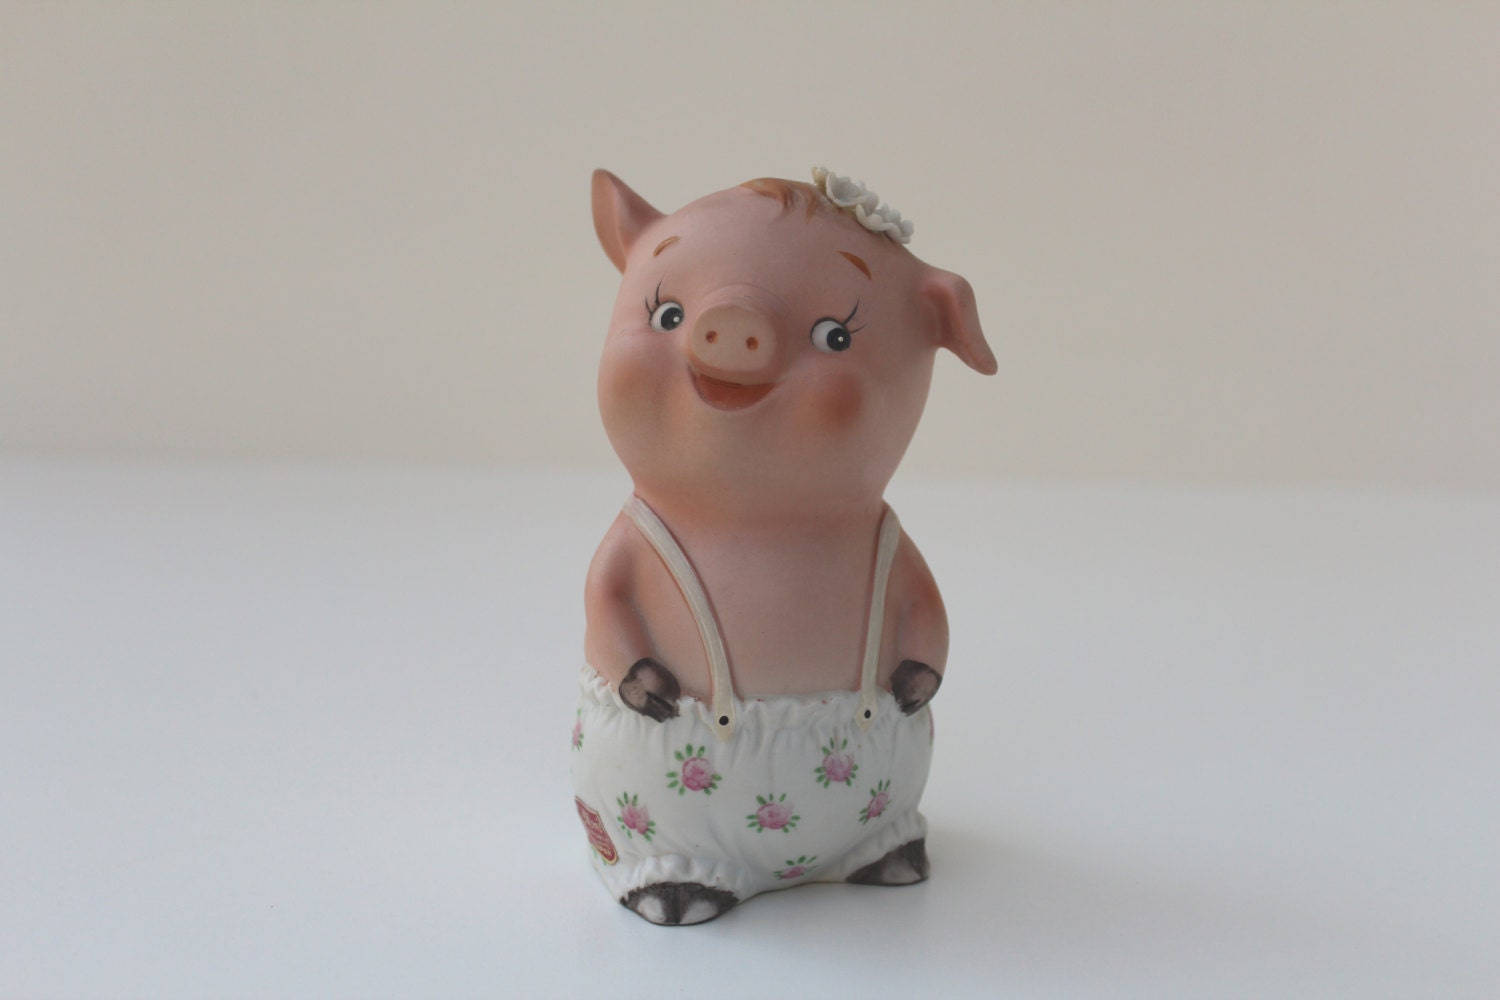 Vintage Lefton China Bisque Piggy Bank Kw2729 By